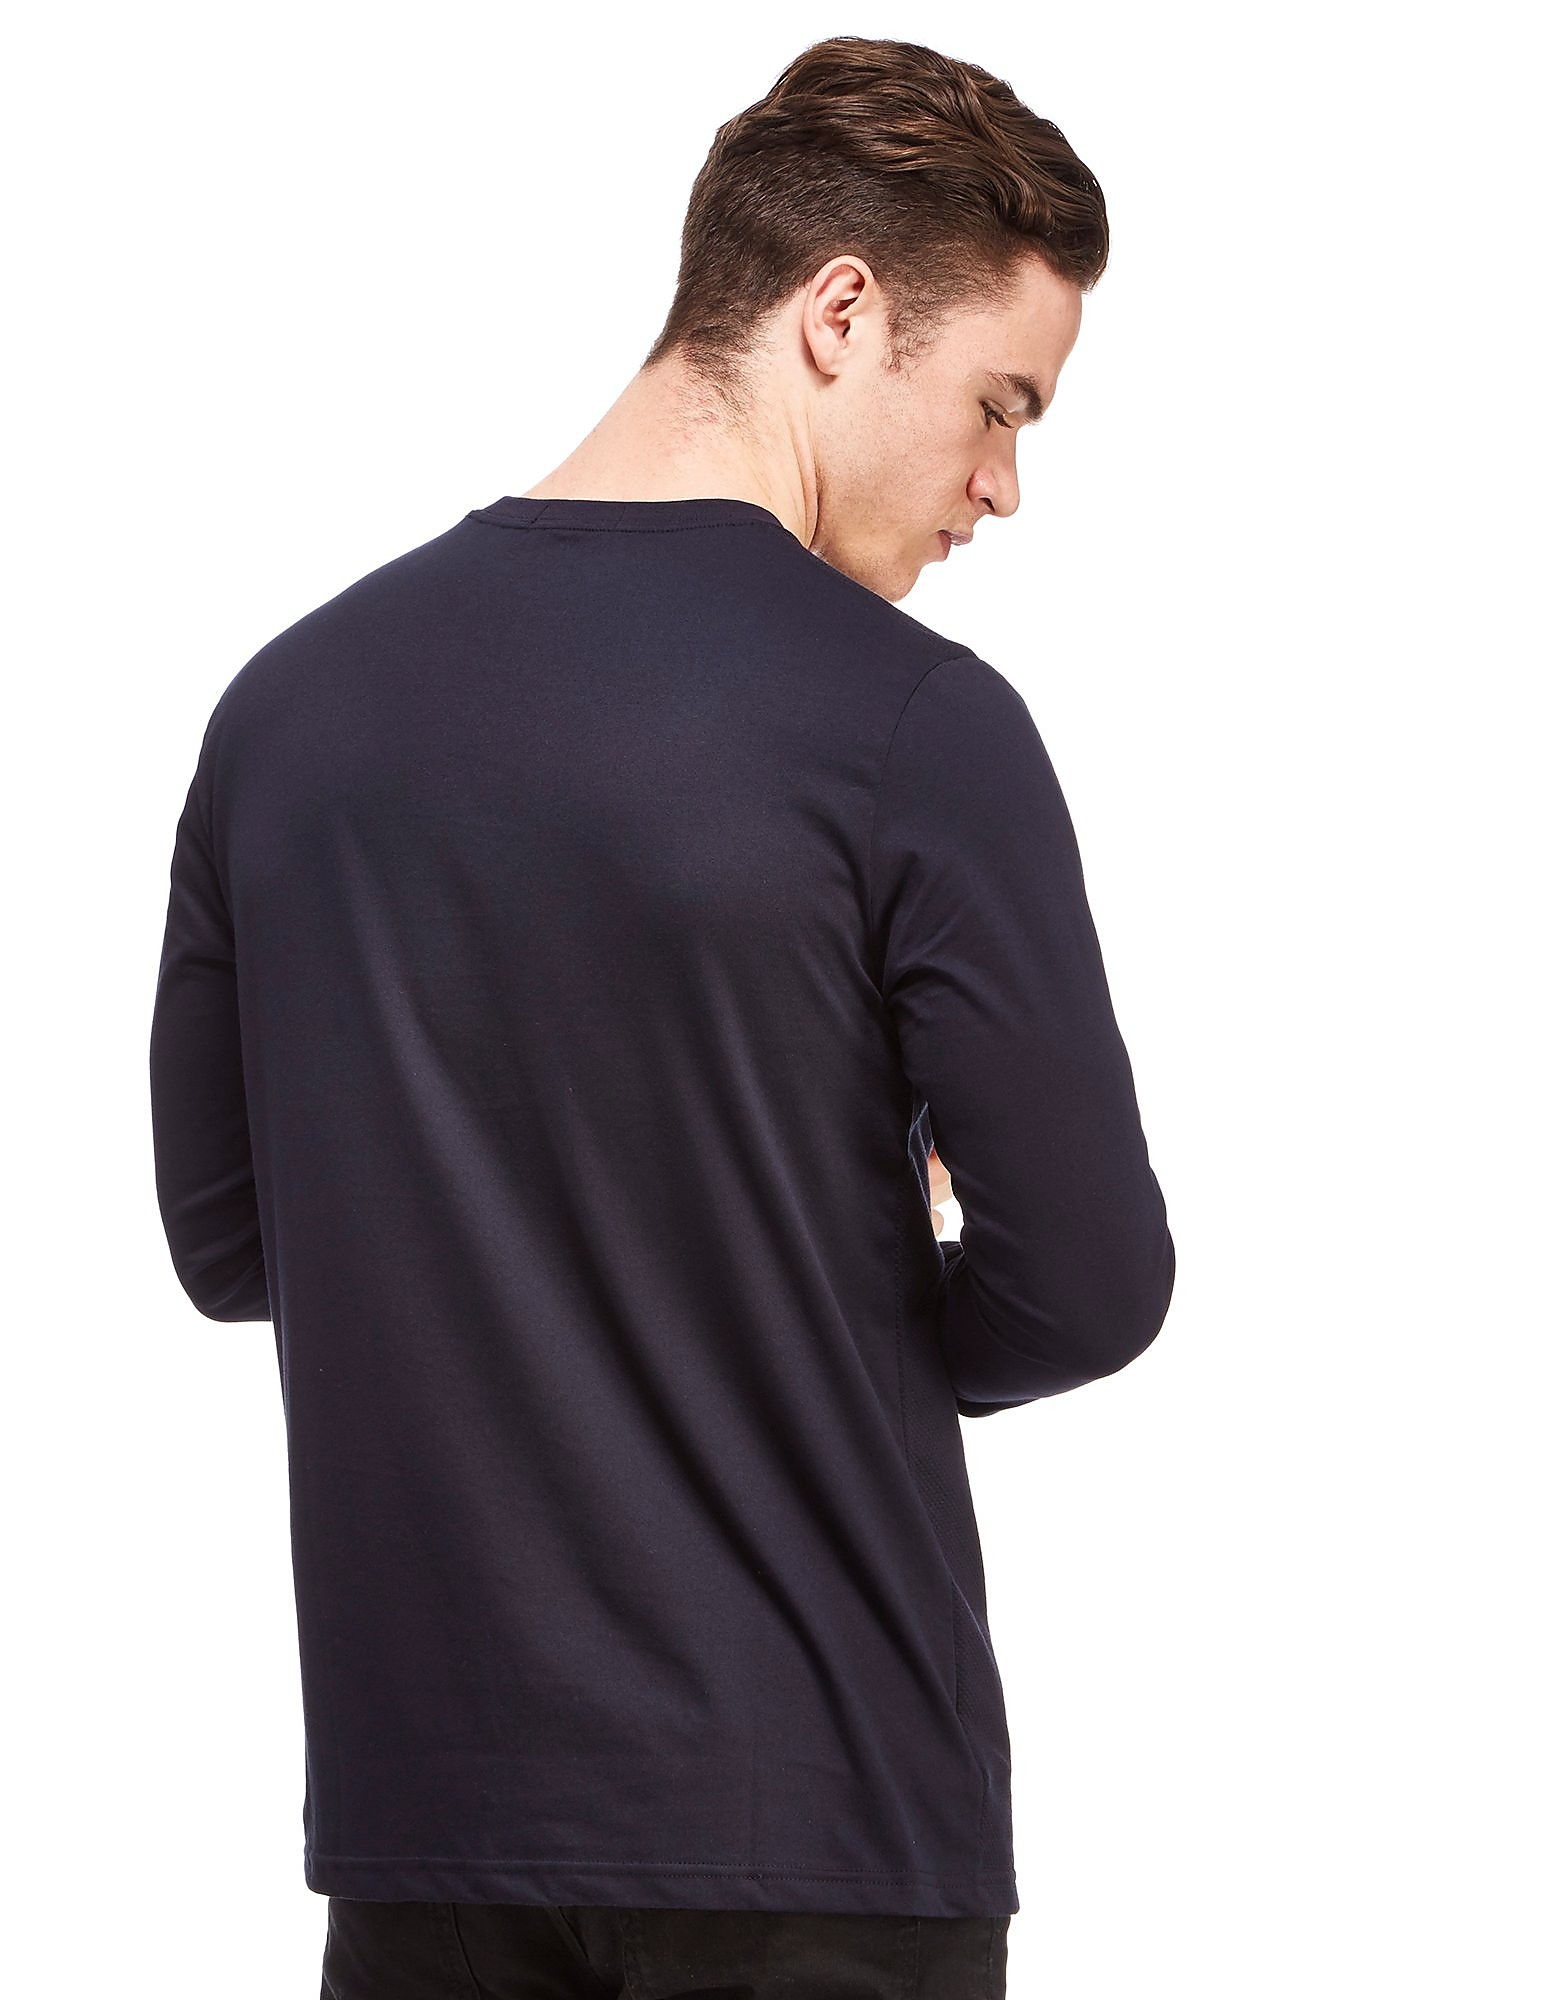 Fred Perry Textured Pique Long Sleeve T-Shirt